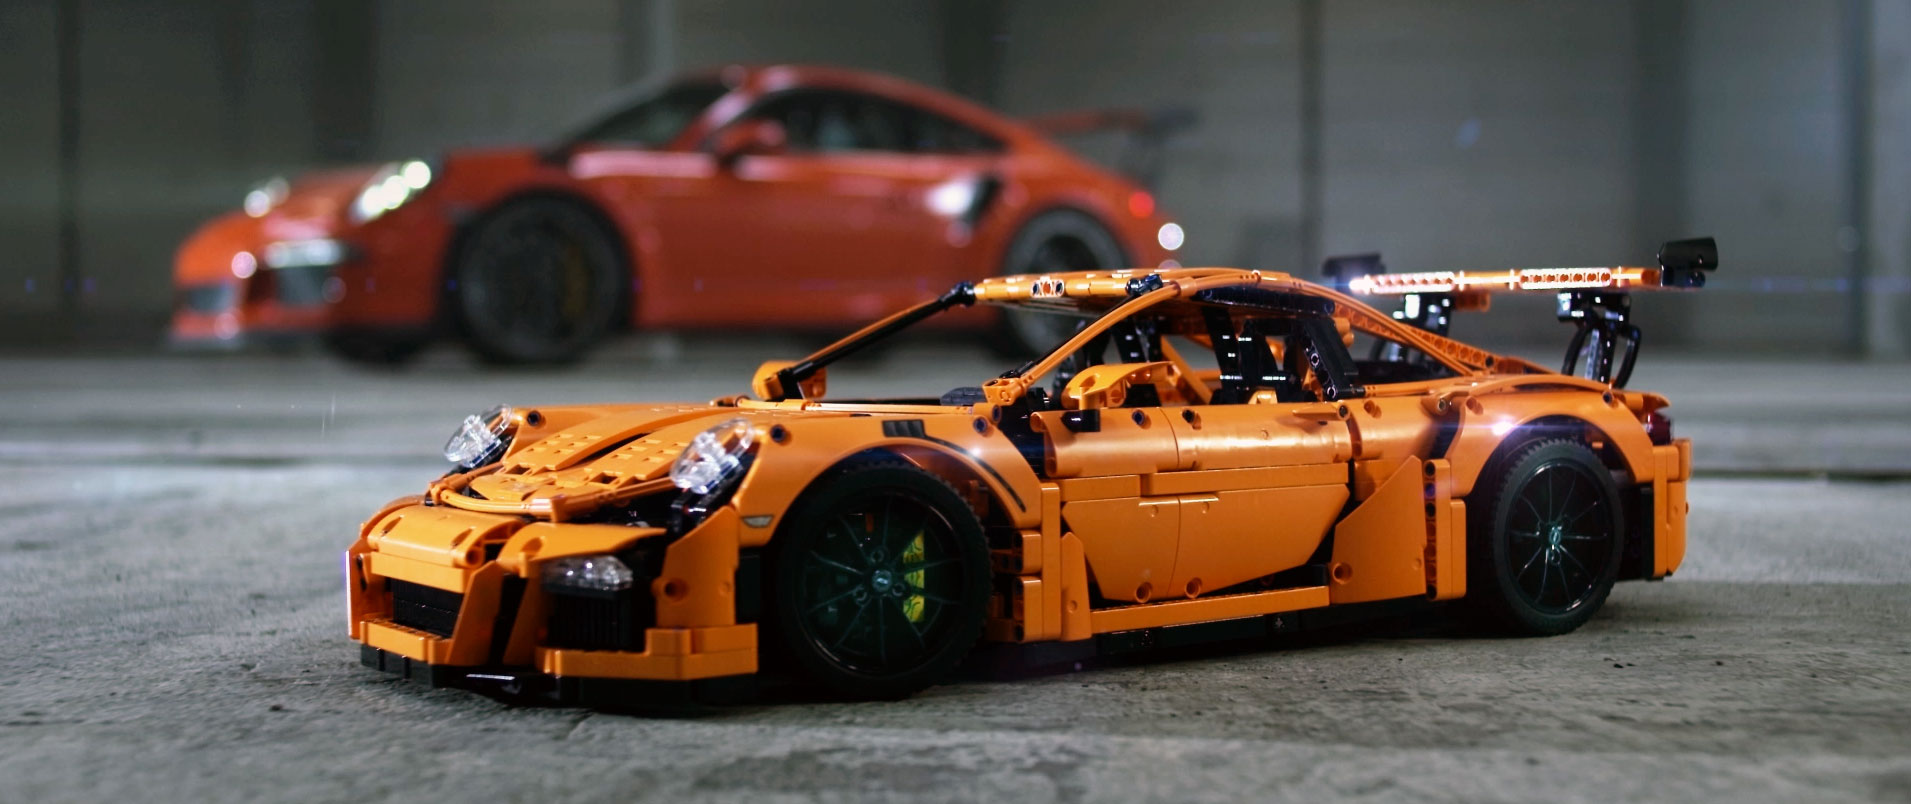 brickfinder win a lego technic porsche 911 gt3. Black Bedroom Furniture Sets. Home Design Ideas